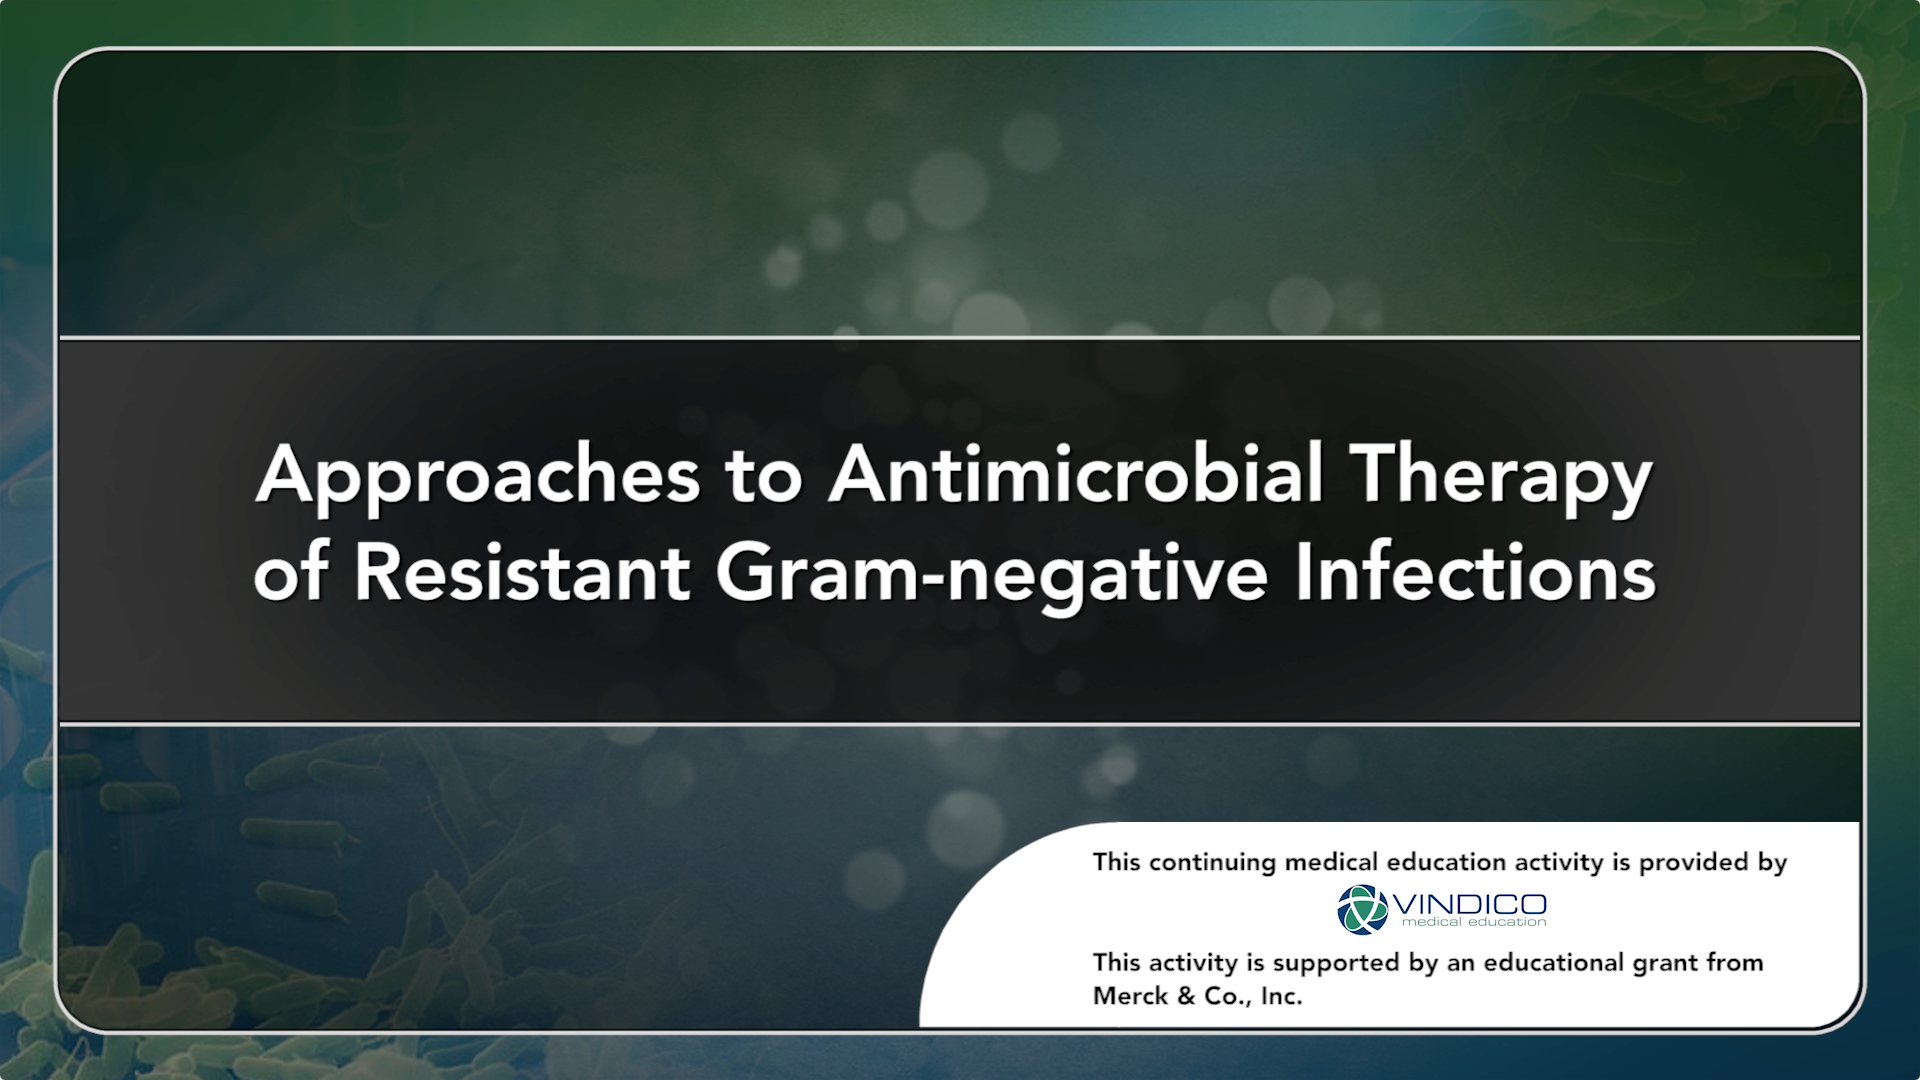 Approaches to Antimicrobial Therapy of Resistant Gram-negative Infections